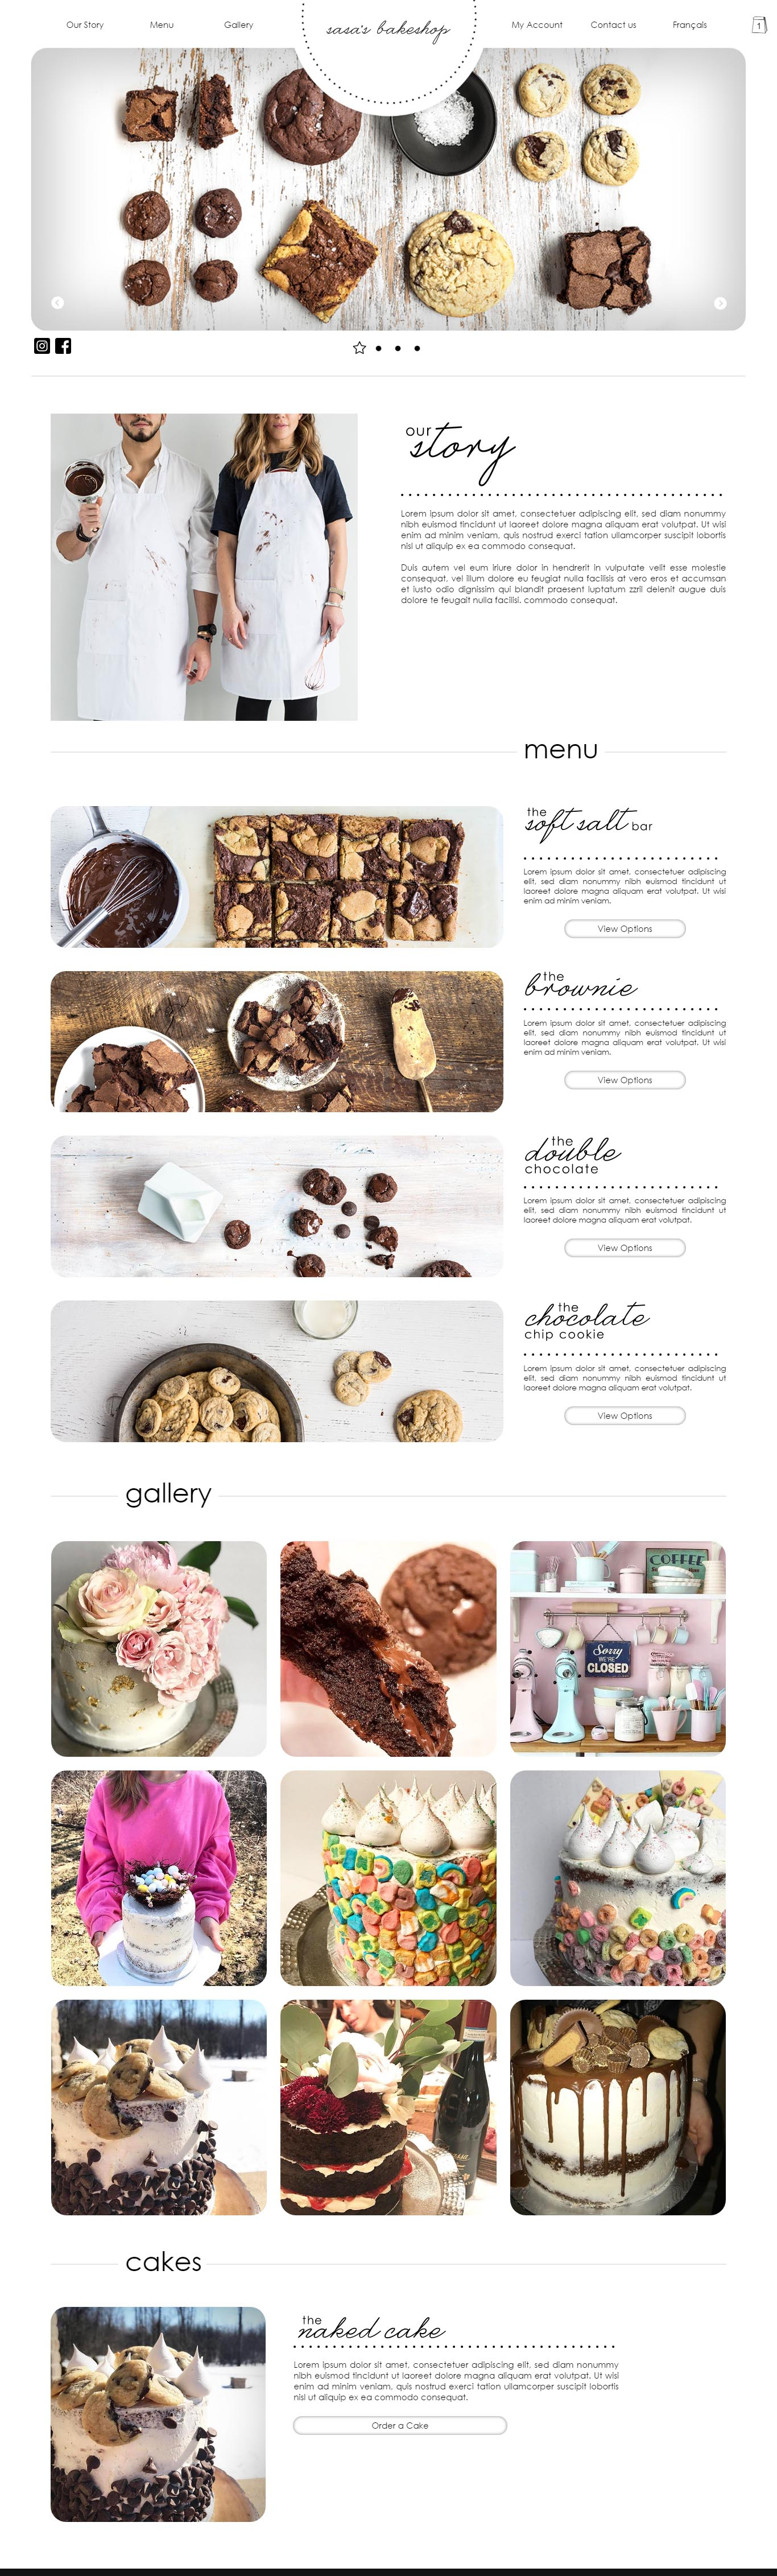 Sasa's Bakeshop Web Design Example